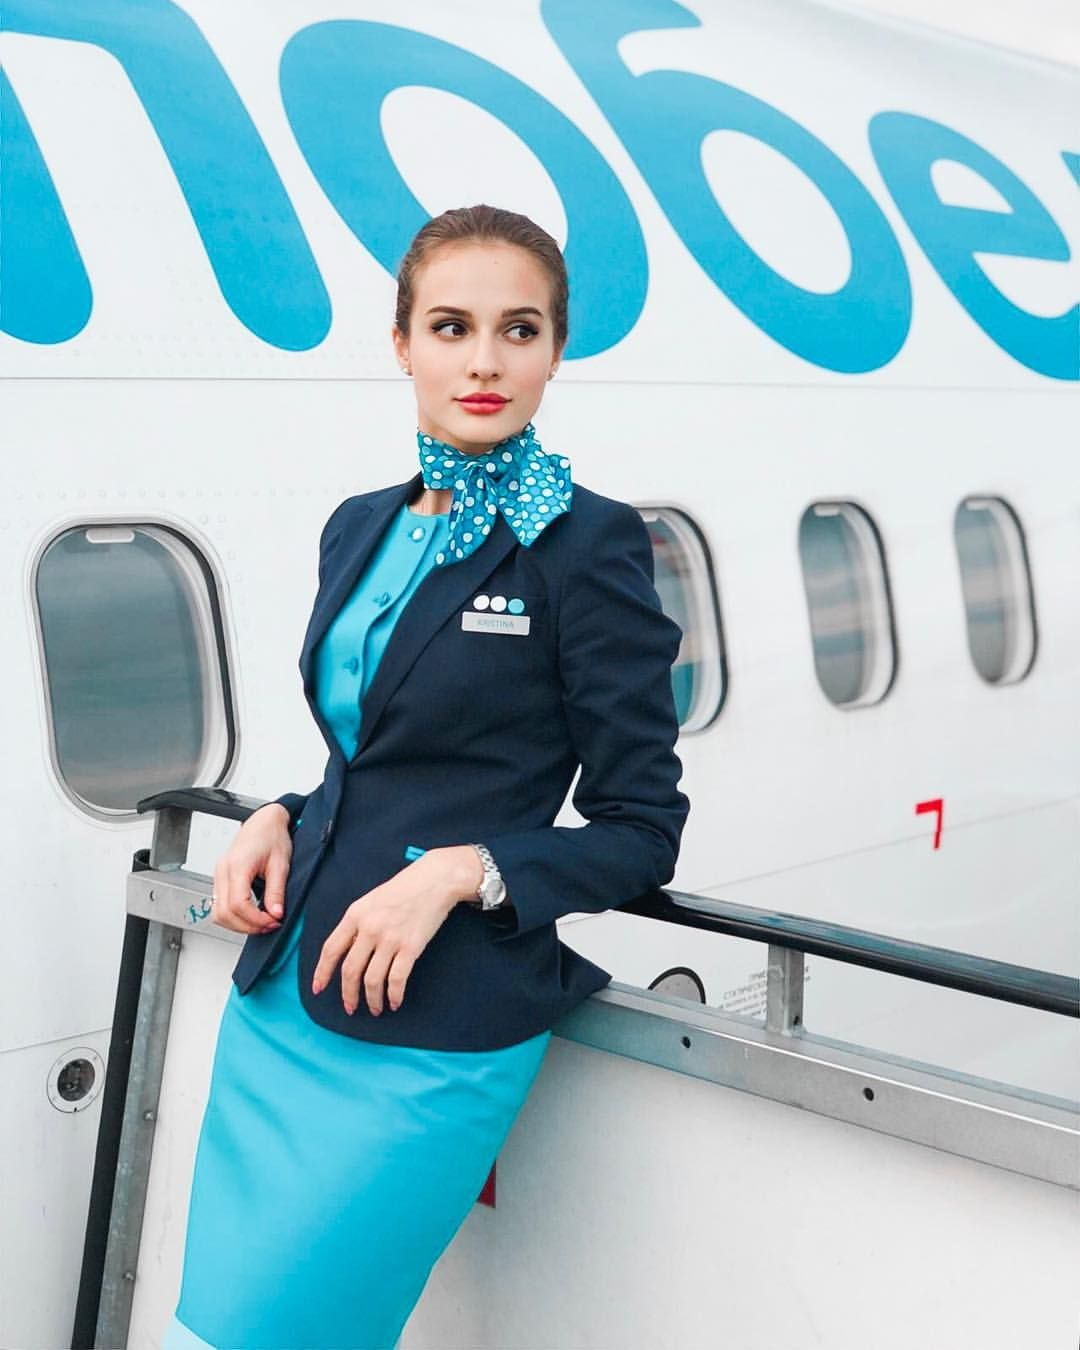 Pin on Hot Cabin crew